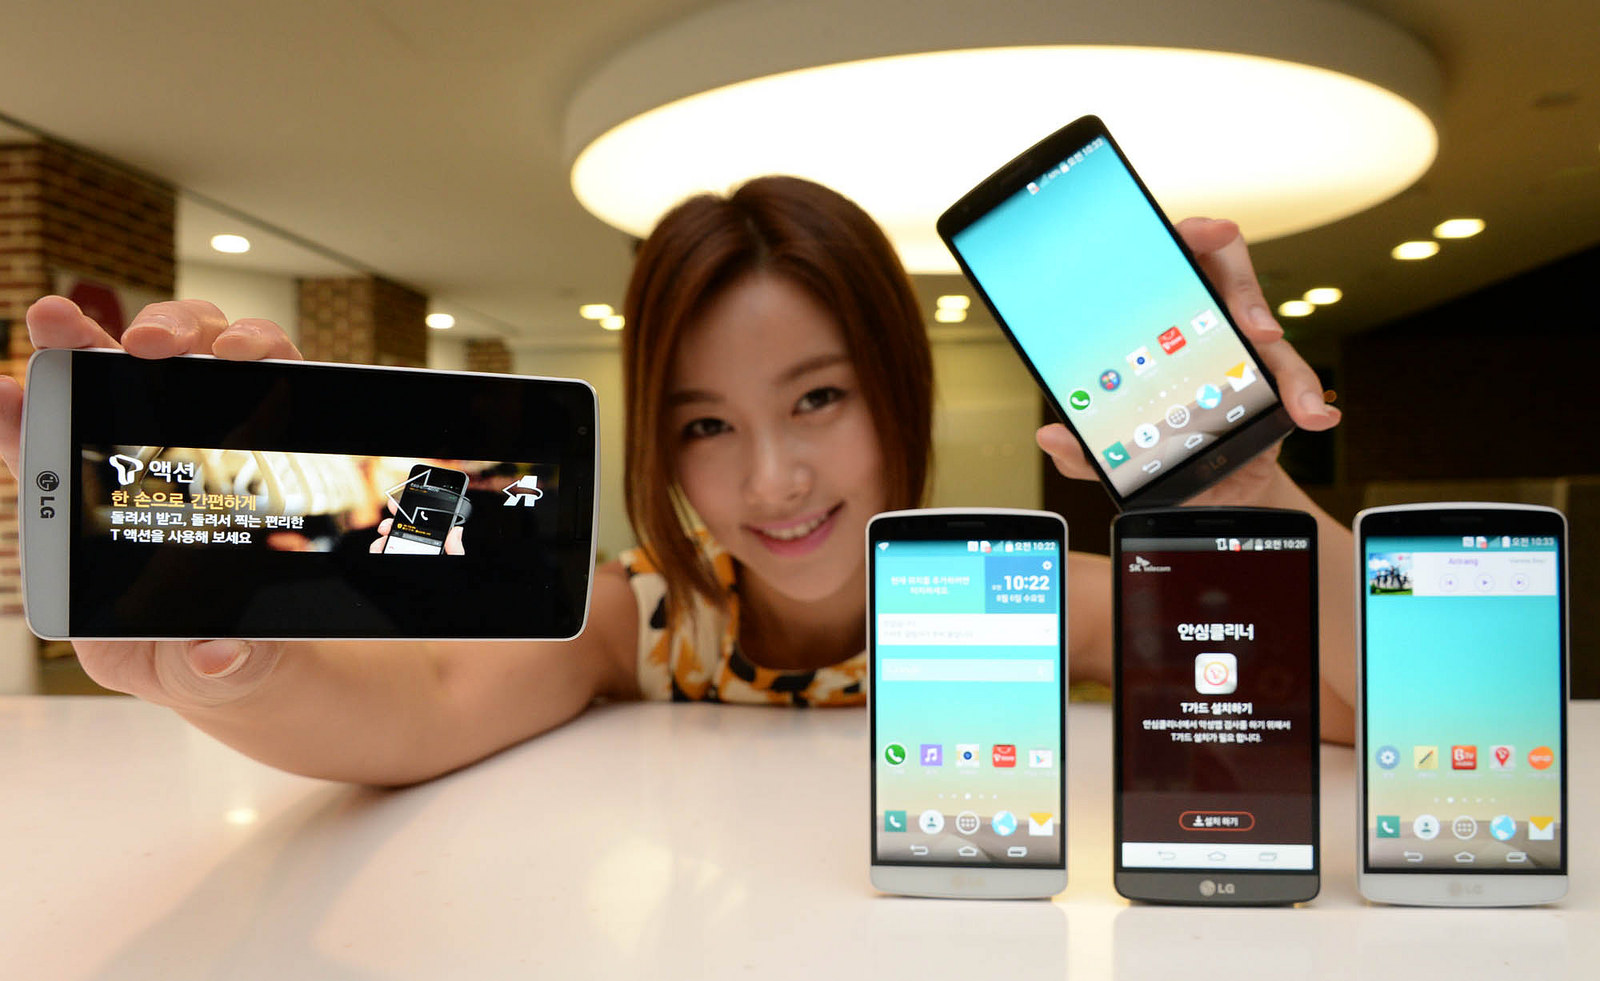 LG-G3-A-official-images (1)